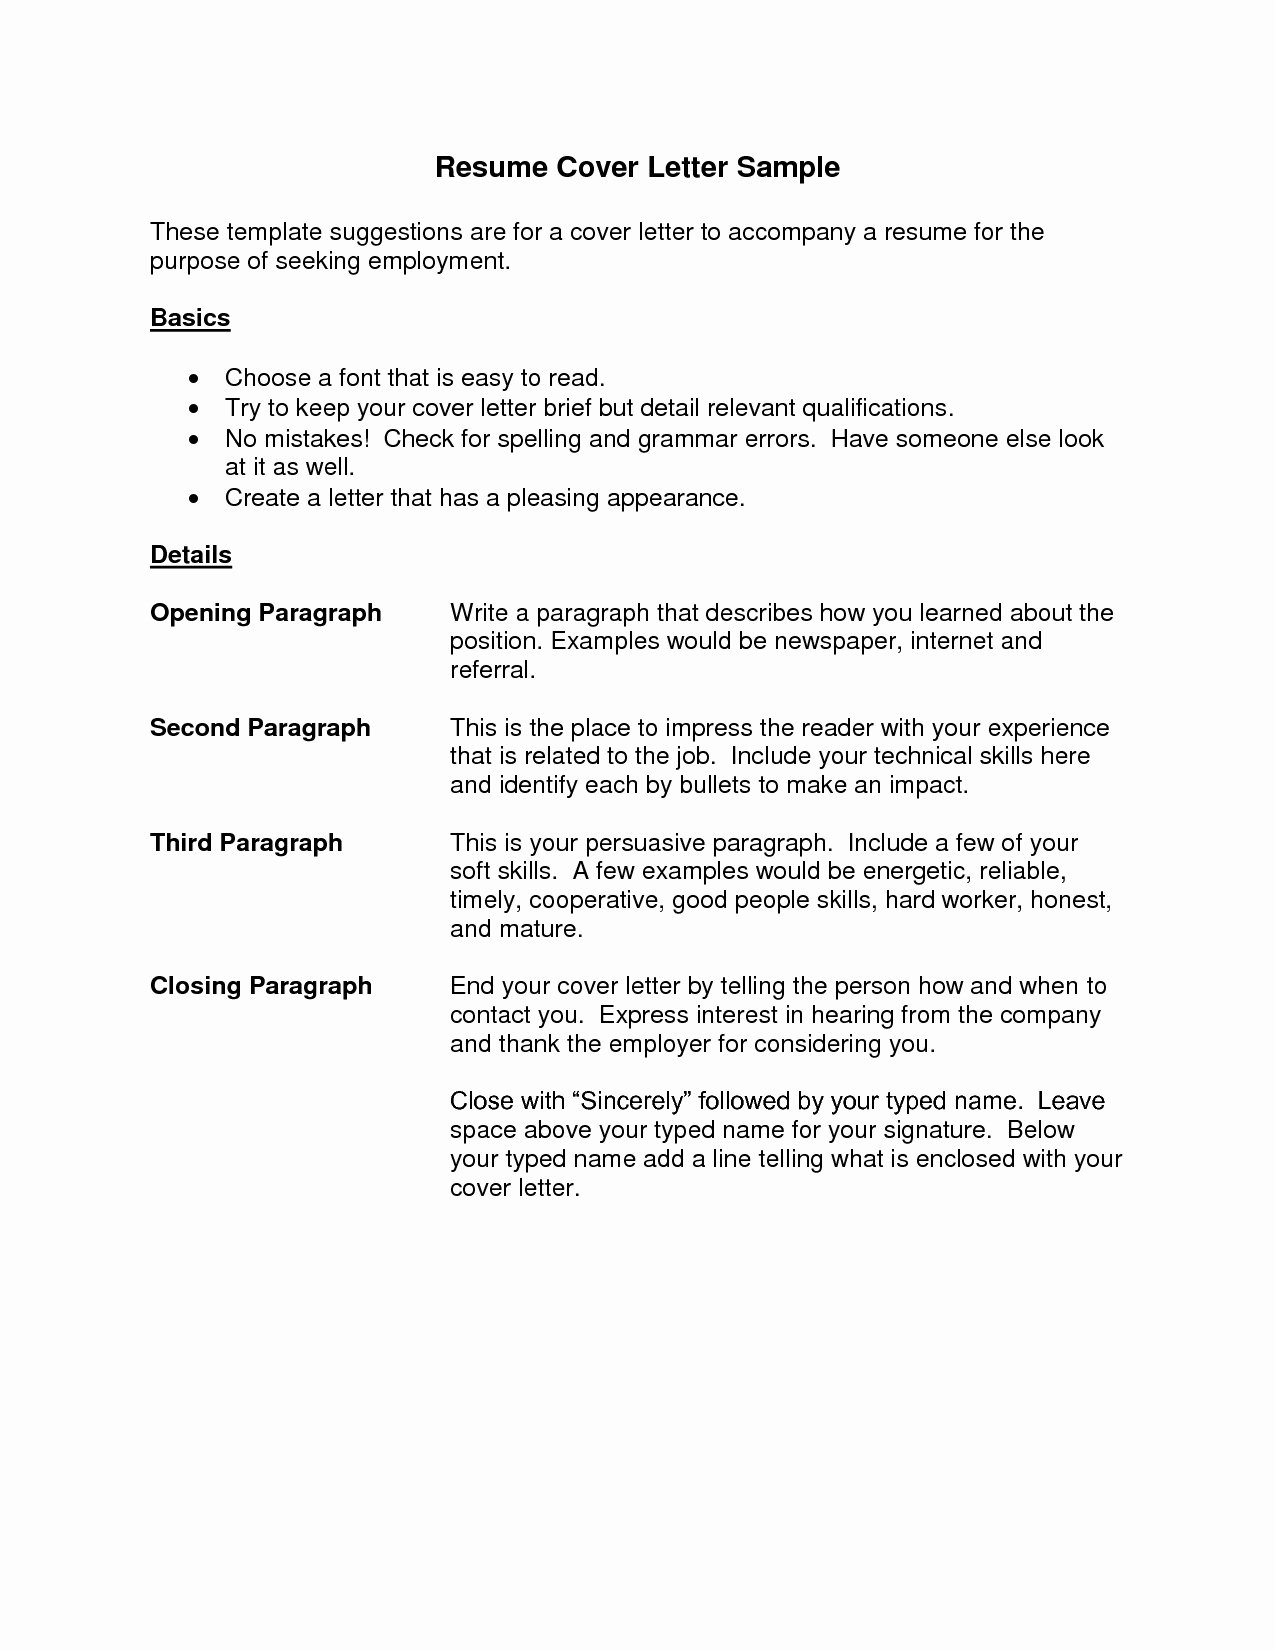 Example Cover Letter for Resume Template